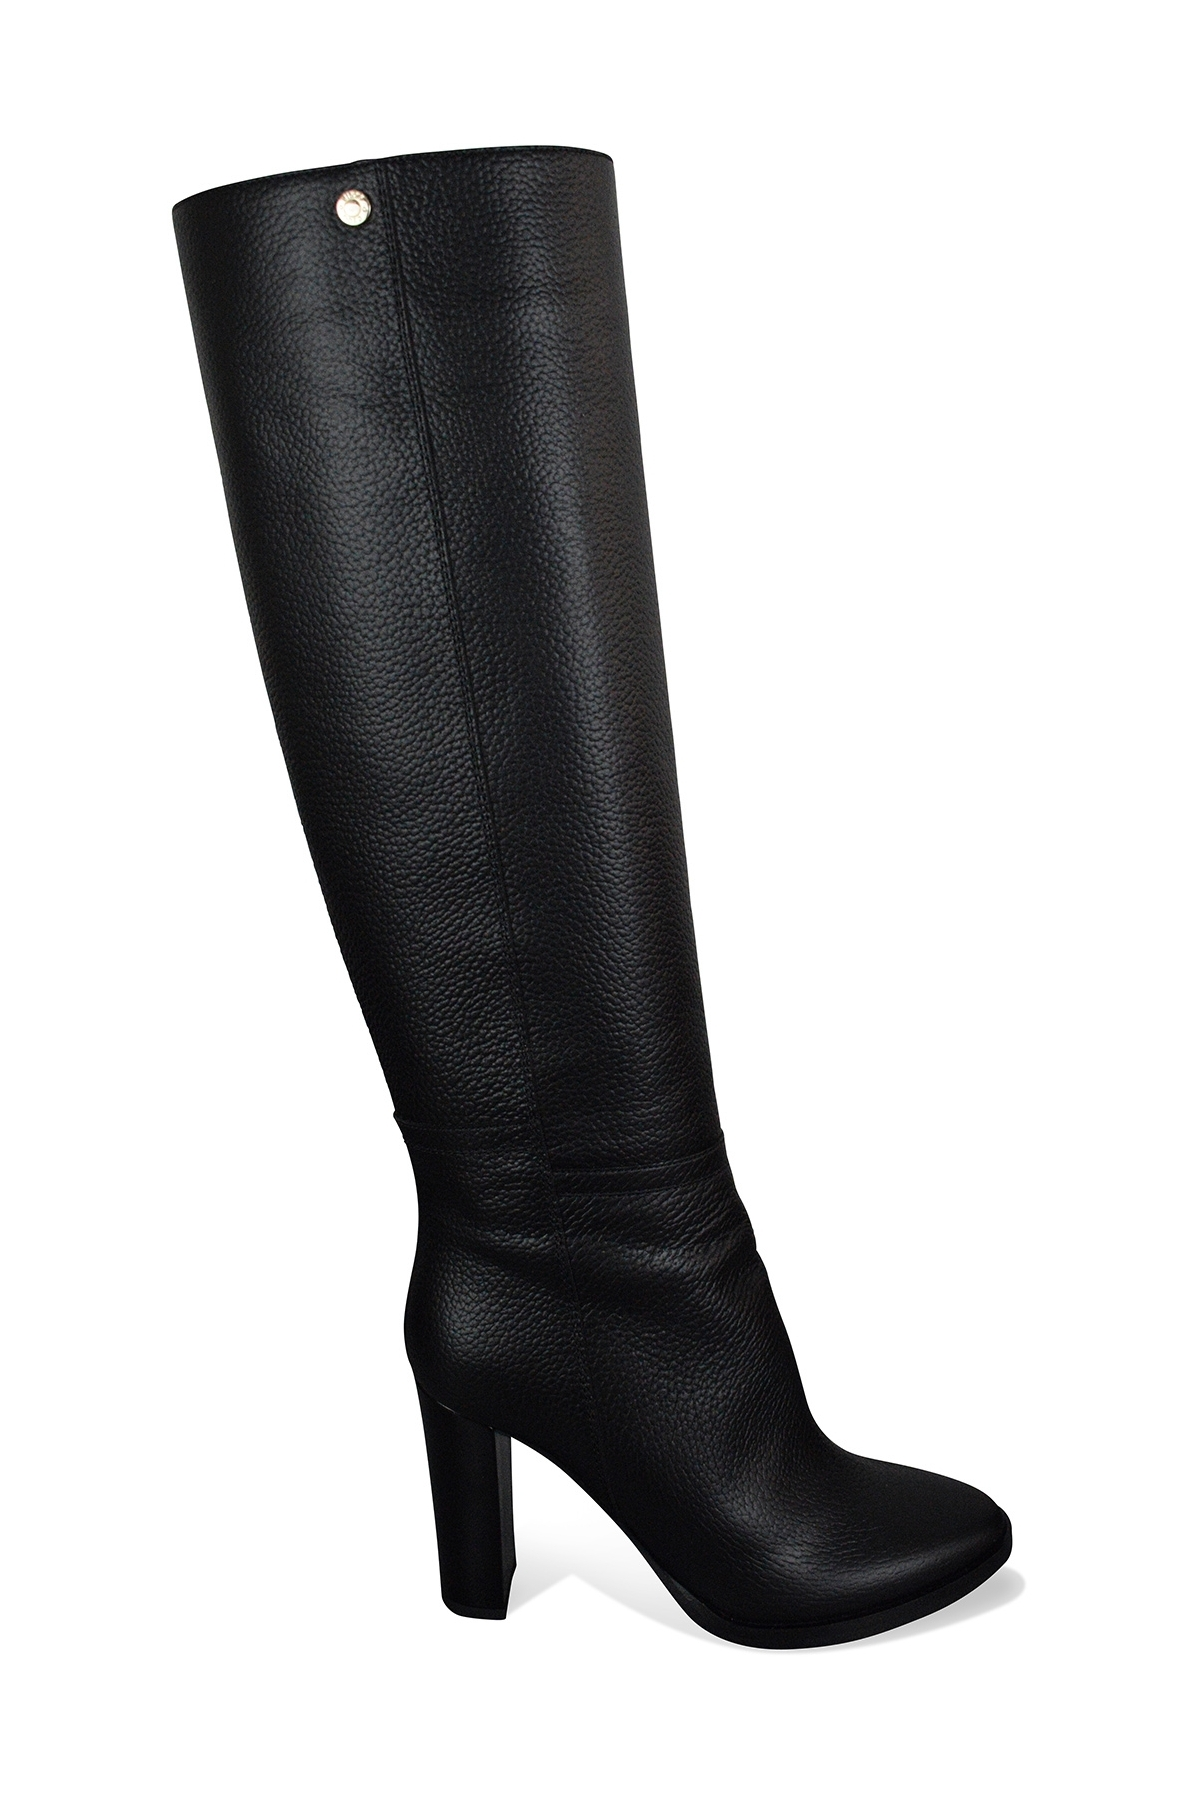 Jimmy Choo Haywood 95 boots in black grained leather with high patent leather heel and notched rubber sole